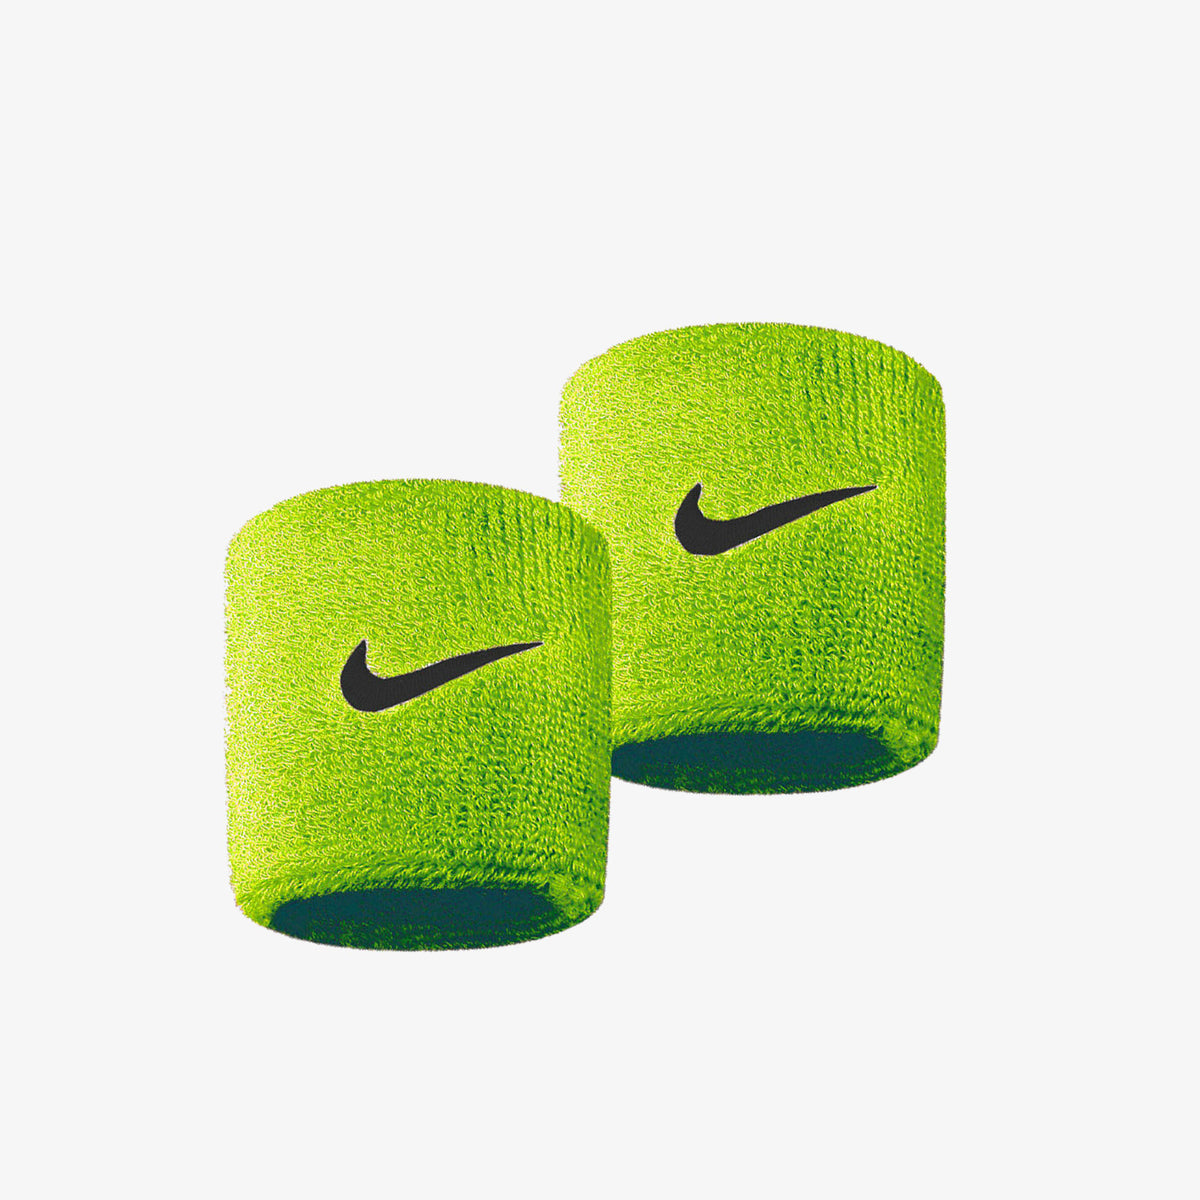 Nike Swoosh Wristband - Atomic Green/Black